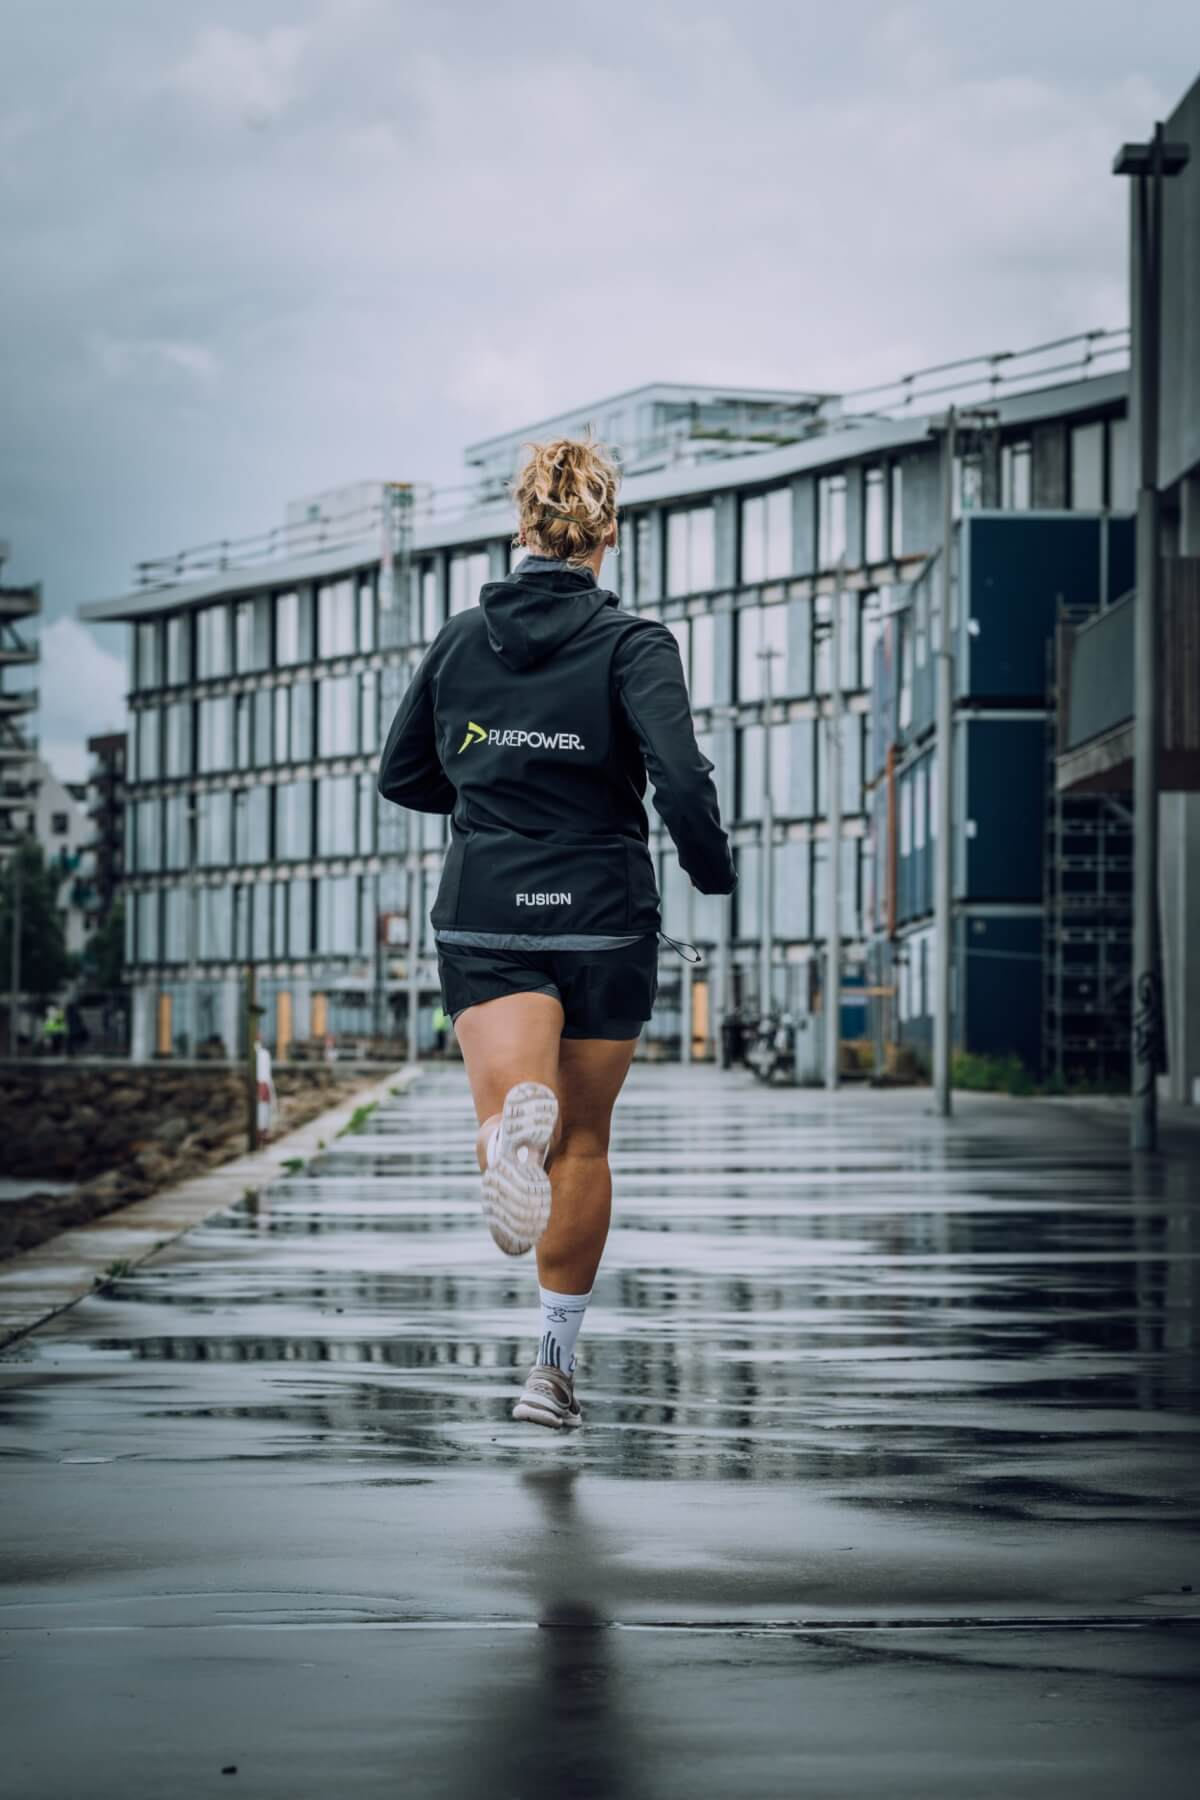 A woman jogging and taking responsibility to get in better shape